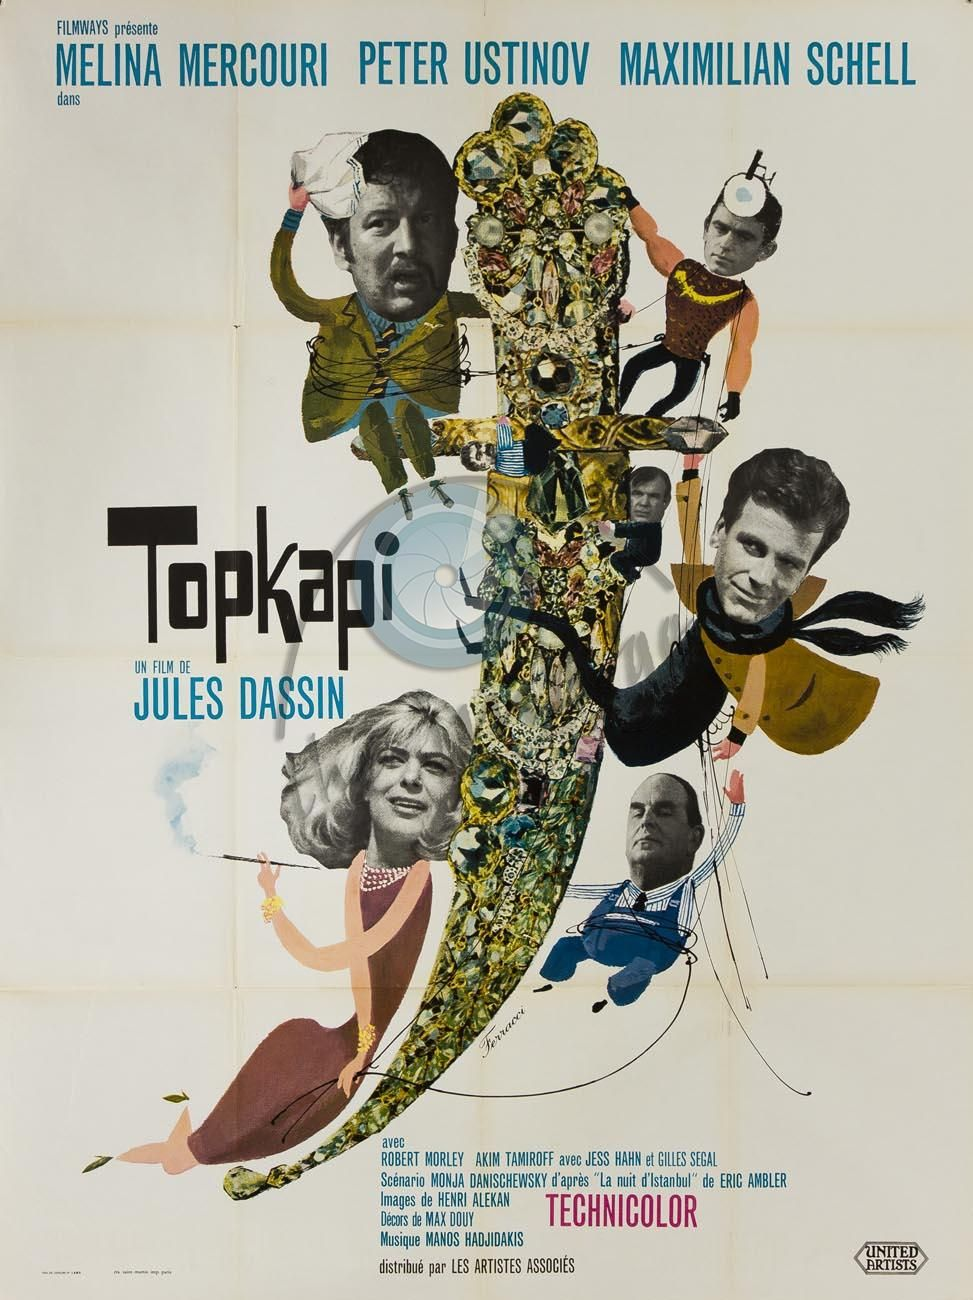 Topkapi movie poster. Higly funny. Sketching, photo collage and cool  lettering.